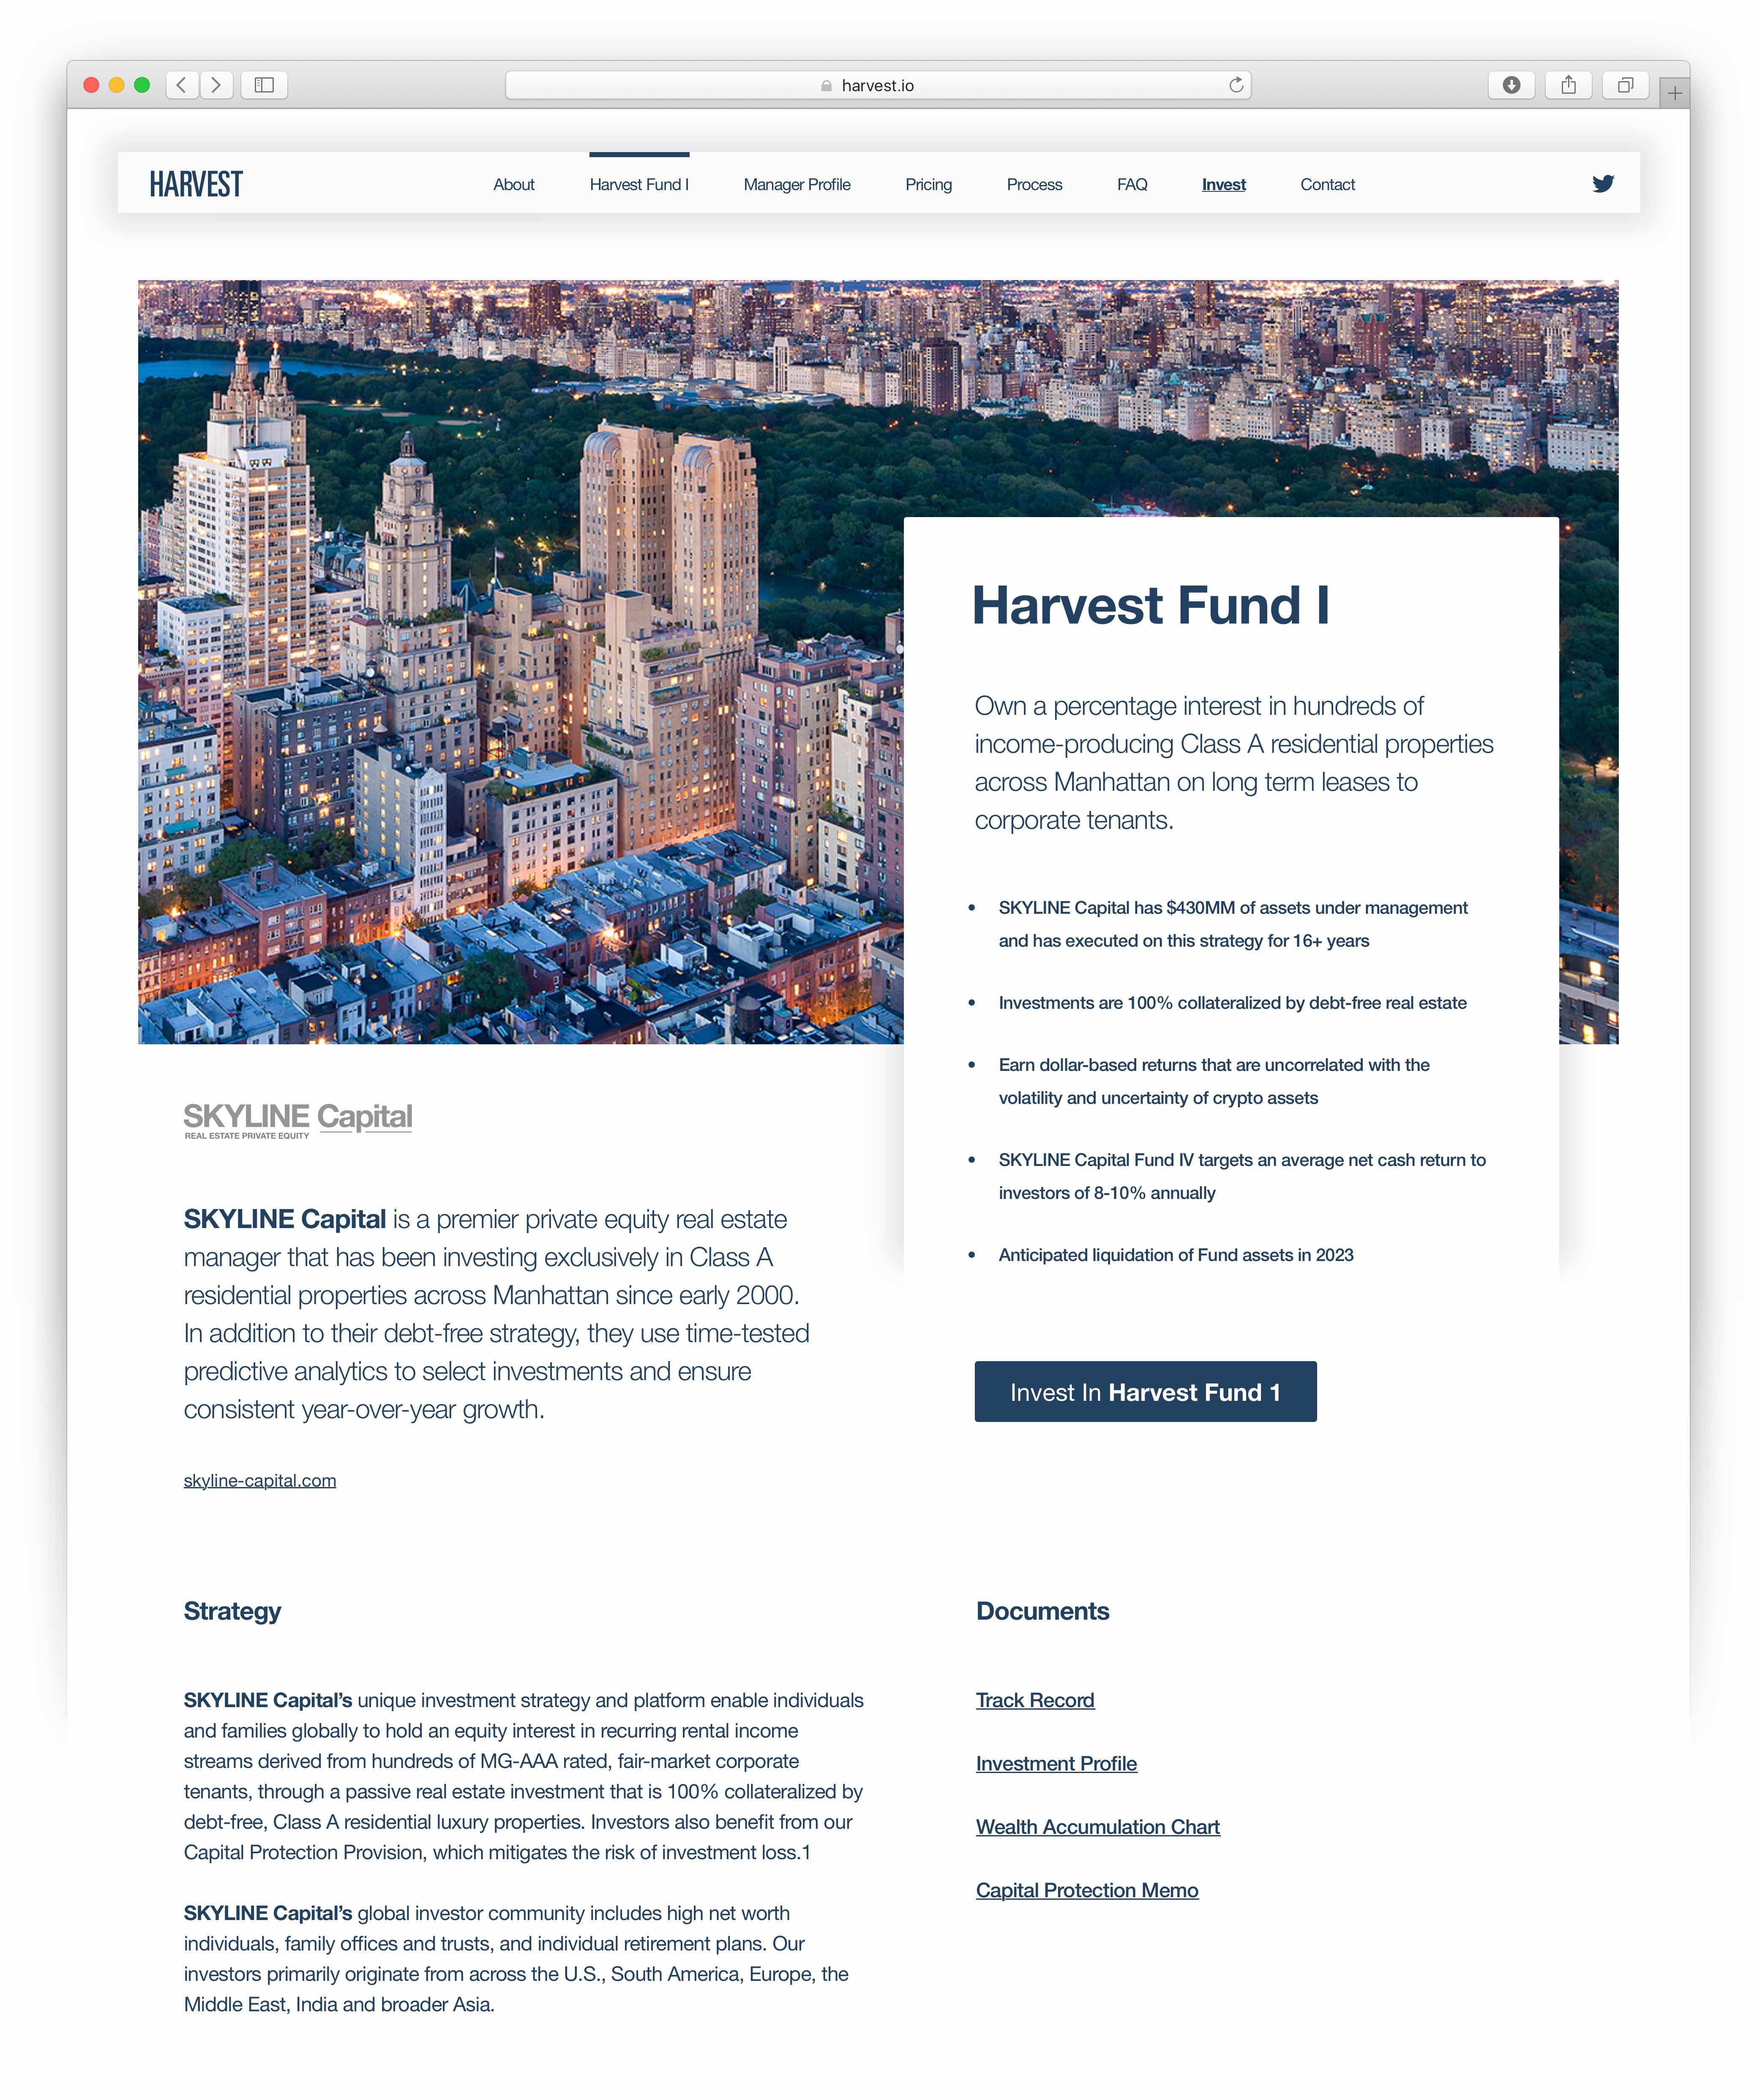 Harvest Fund 1 section providing property detail information in a 2 column layout set in Helvetica Neue — by Dima Yagnyuk.